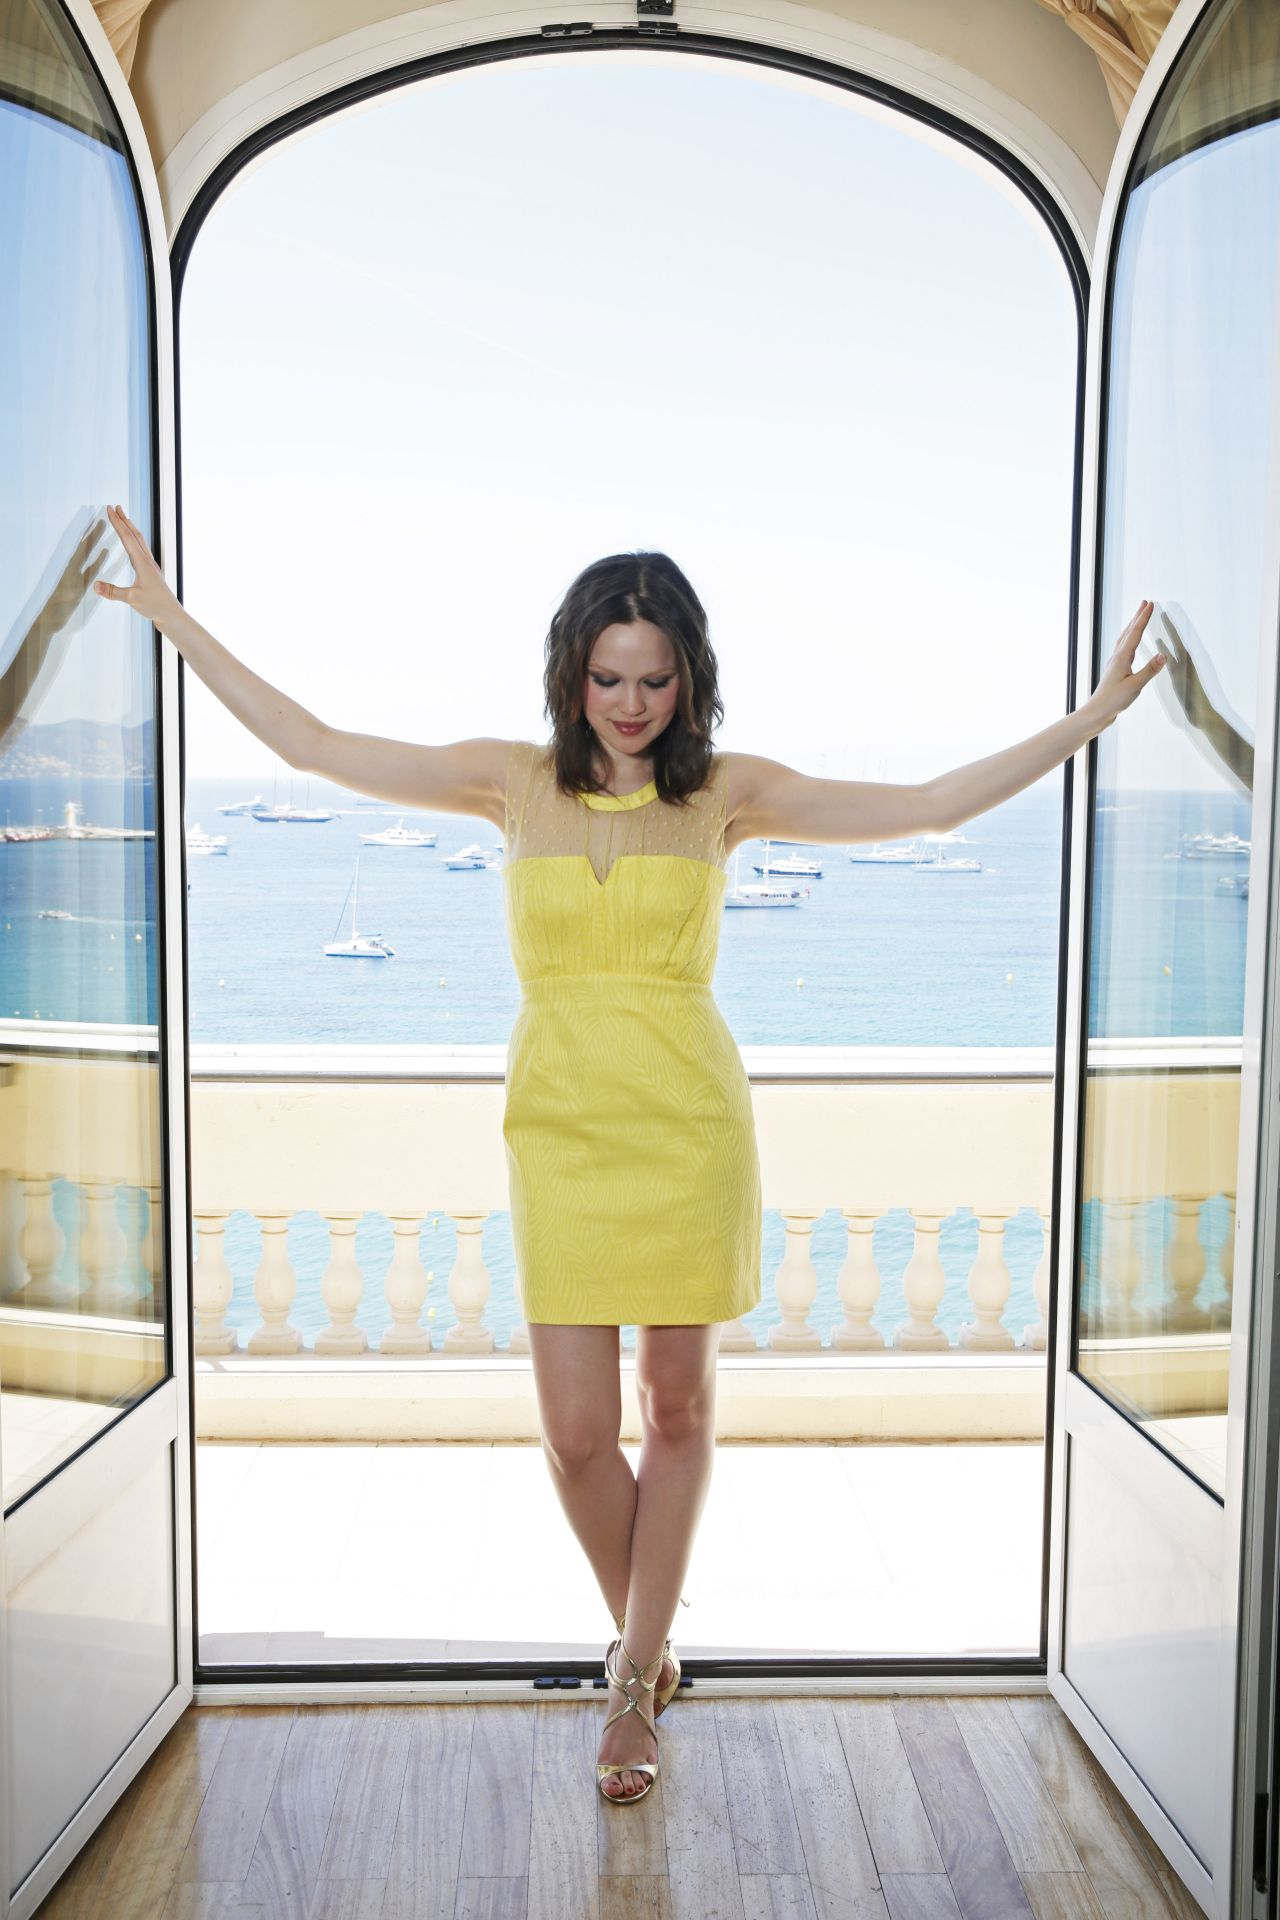 Emilia Schule Photoshoot Cannes 2014 By Dave Bedrosian